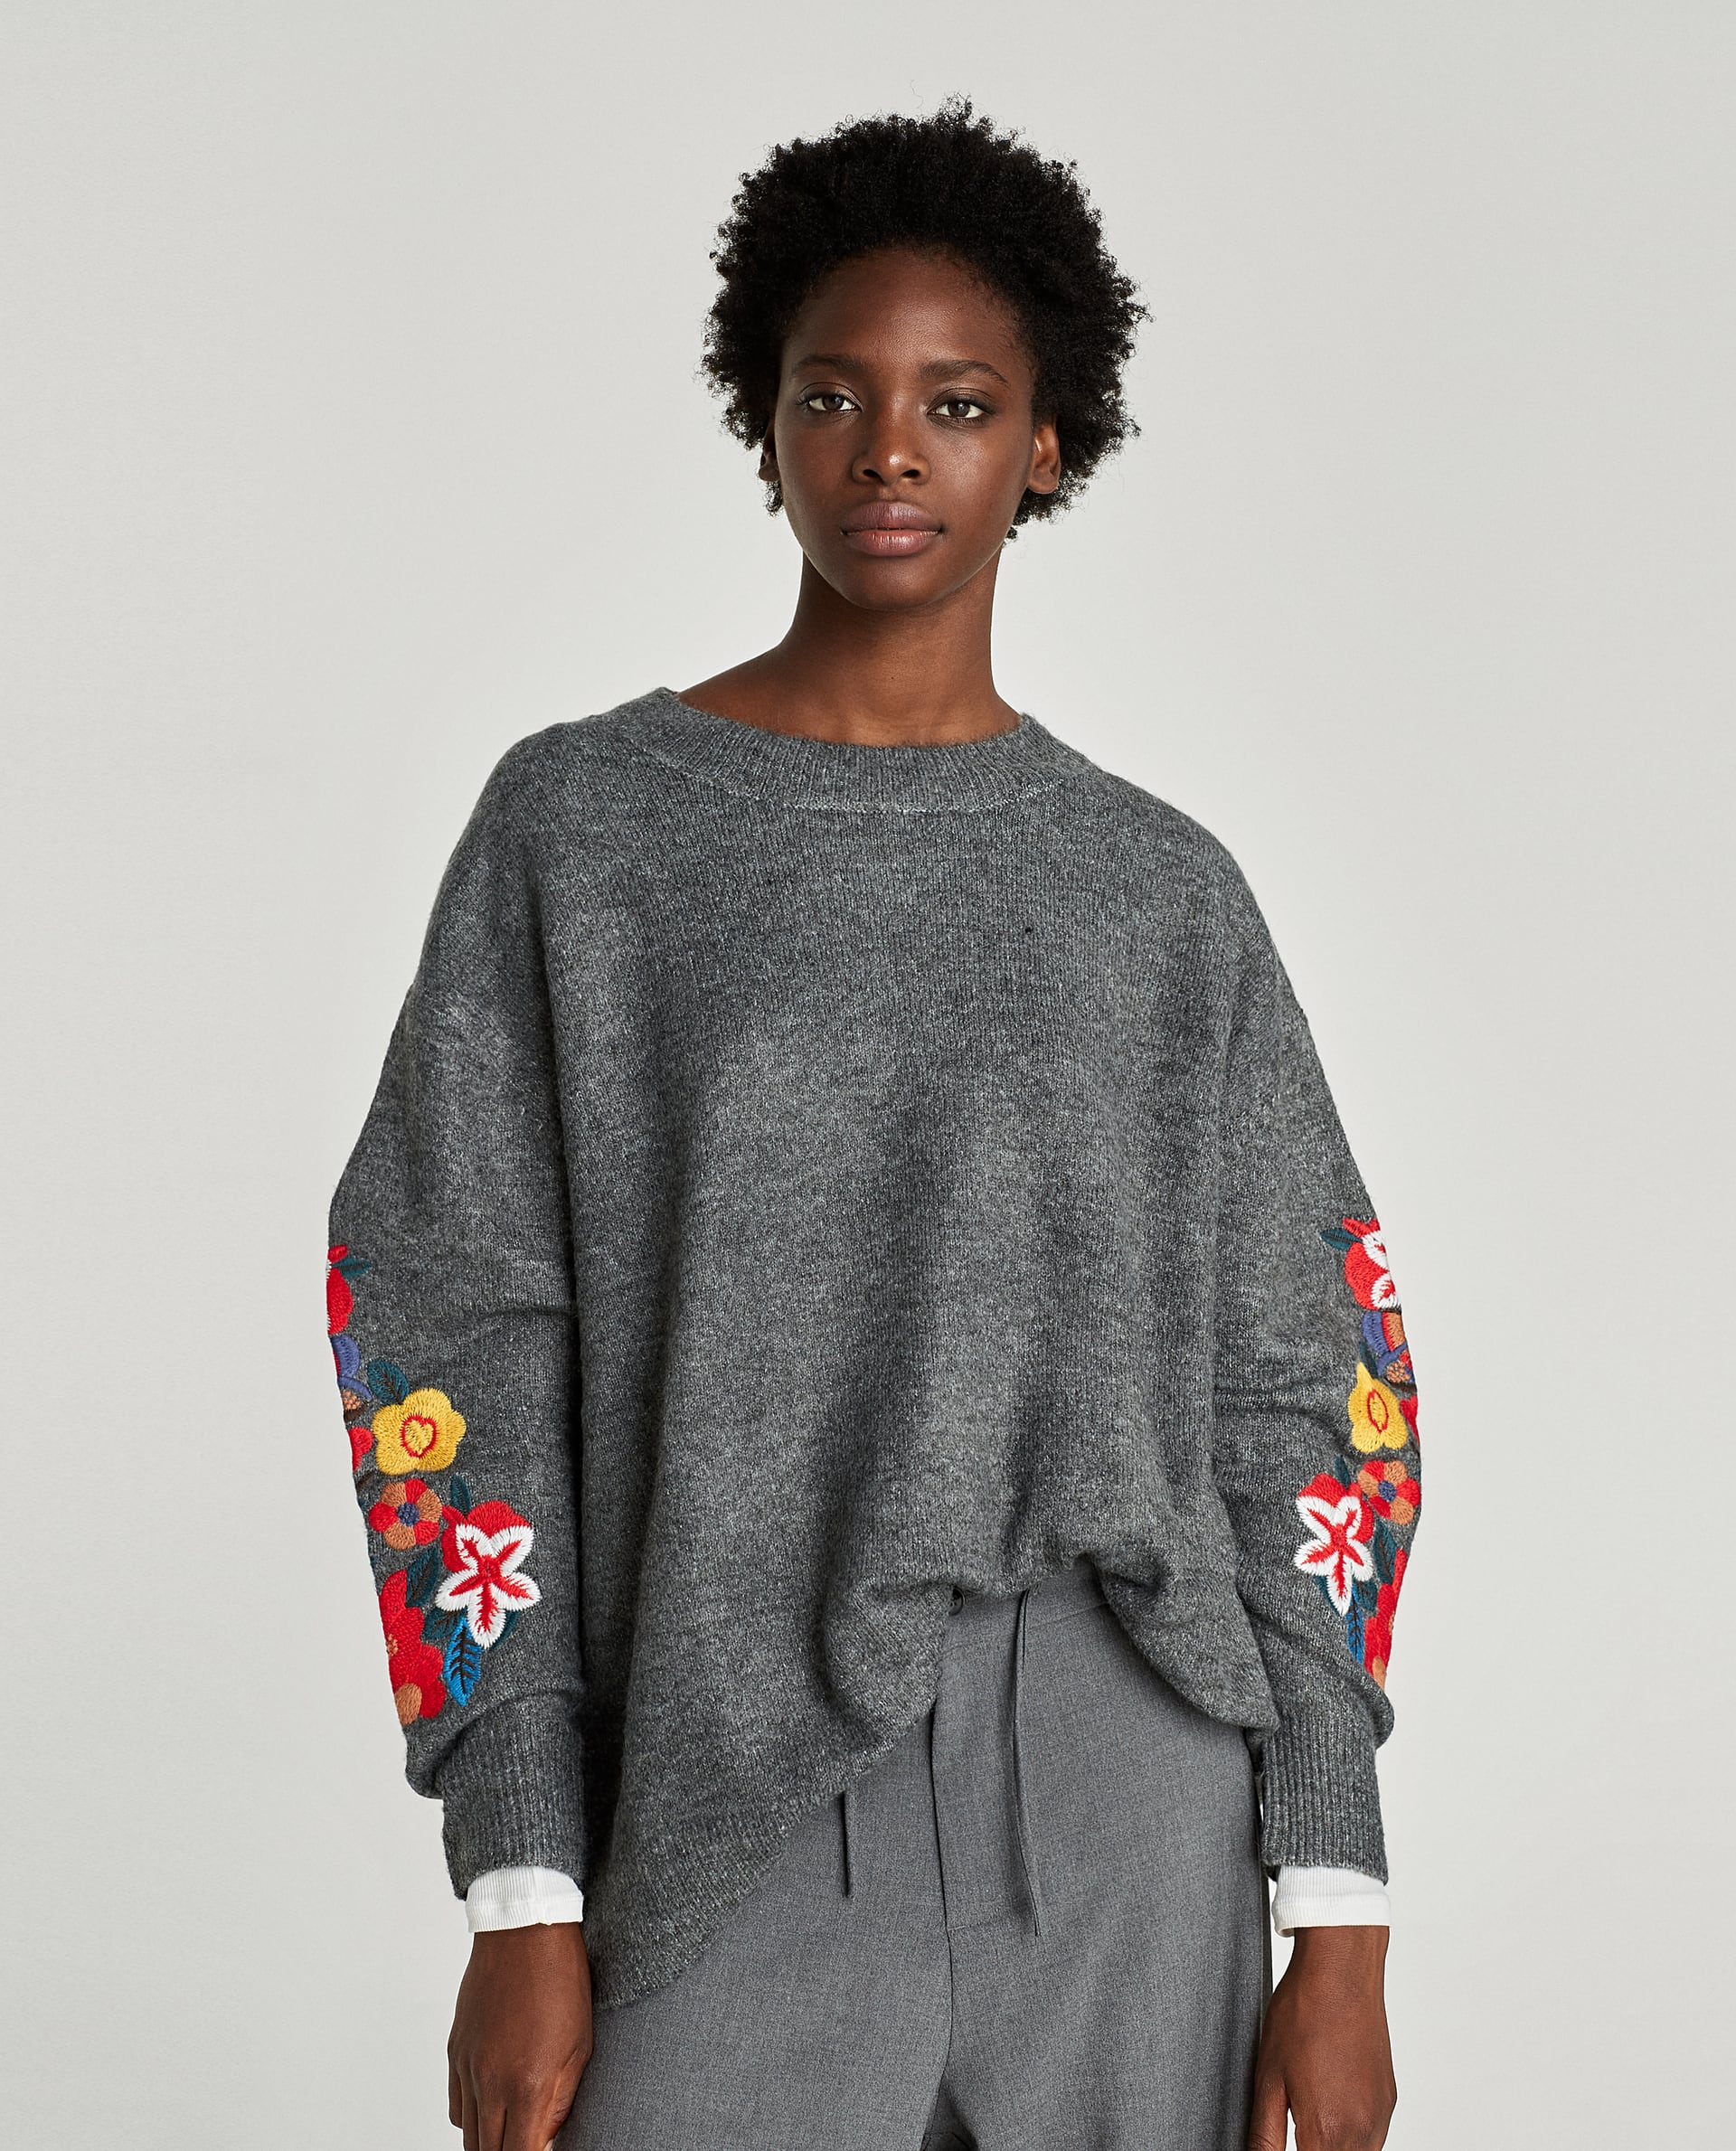 EMBROIDERED OVERSIZED SWEATER WITH CUFF DETAIL